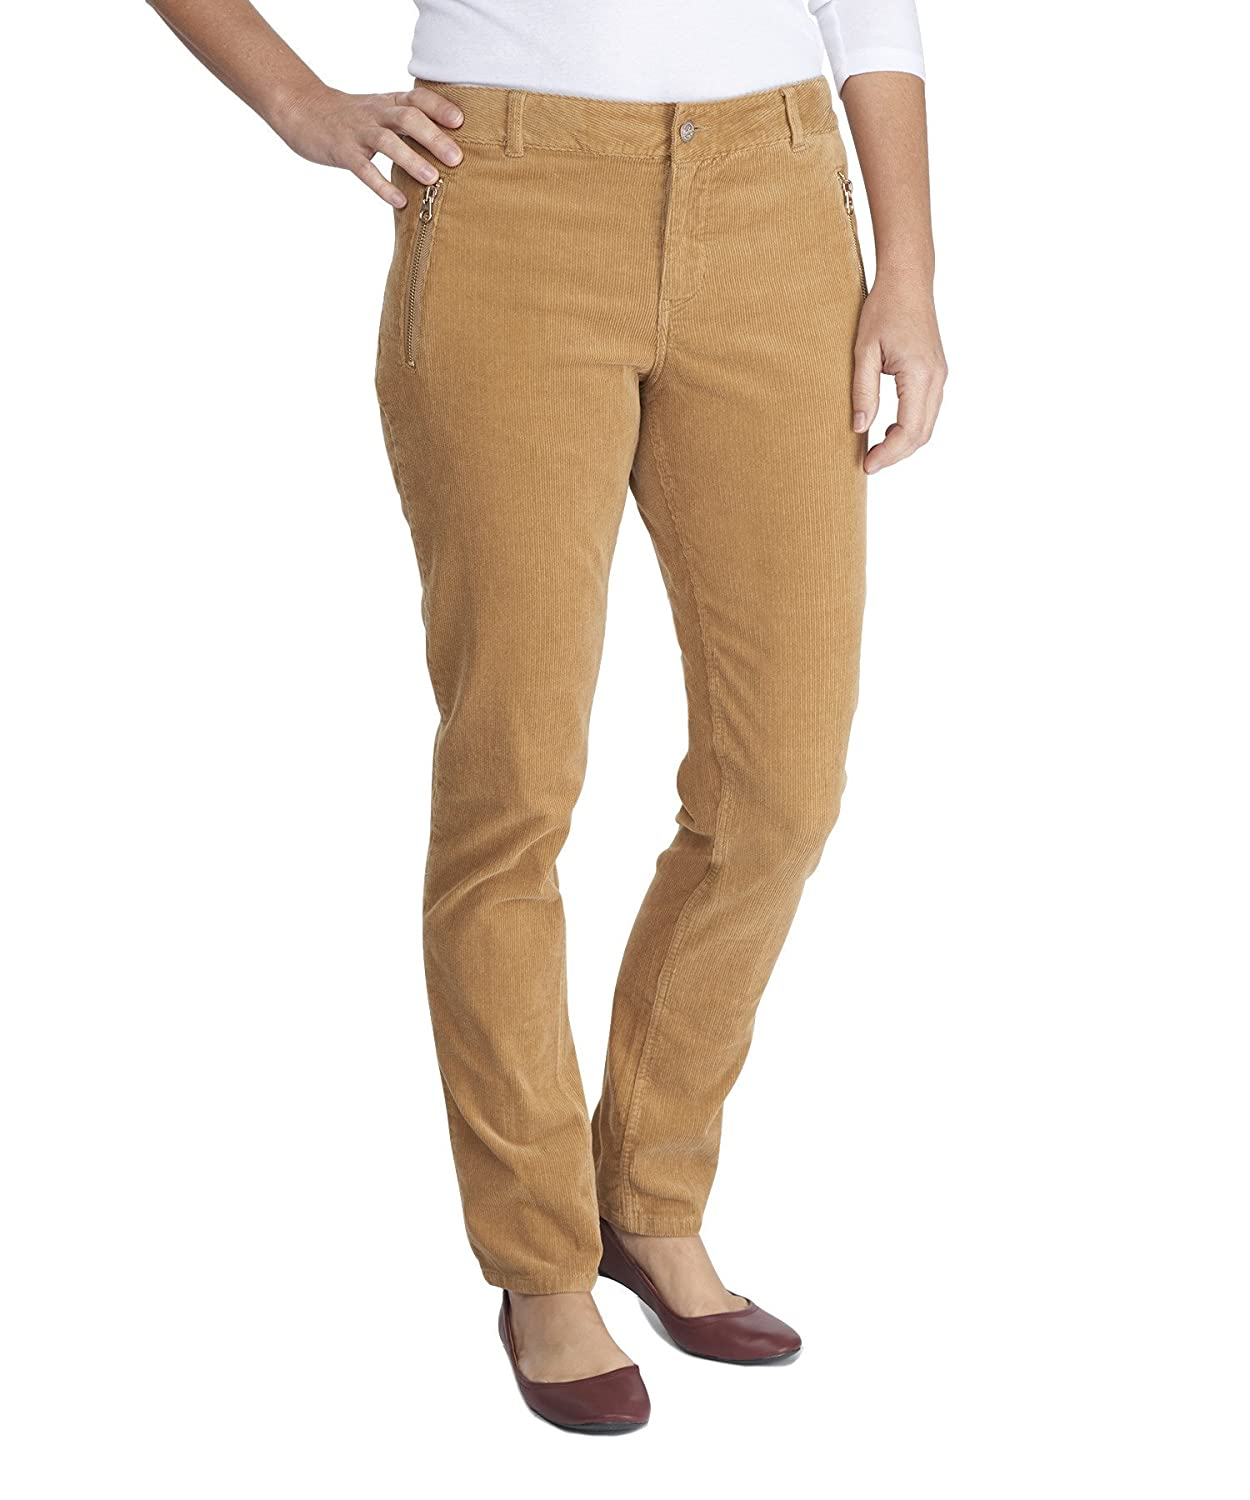 Woolrich Women's Penns Wood Cord Slim Pant, CAMEL (Brown), Size 8